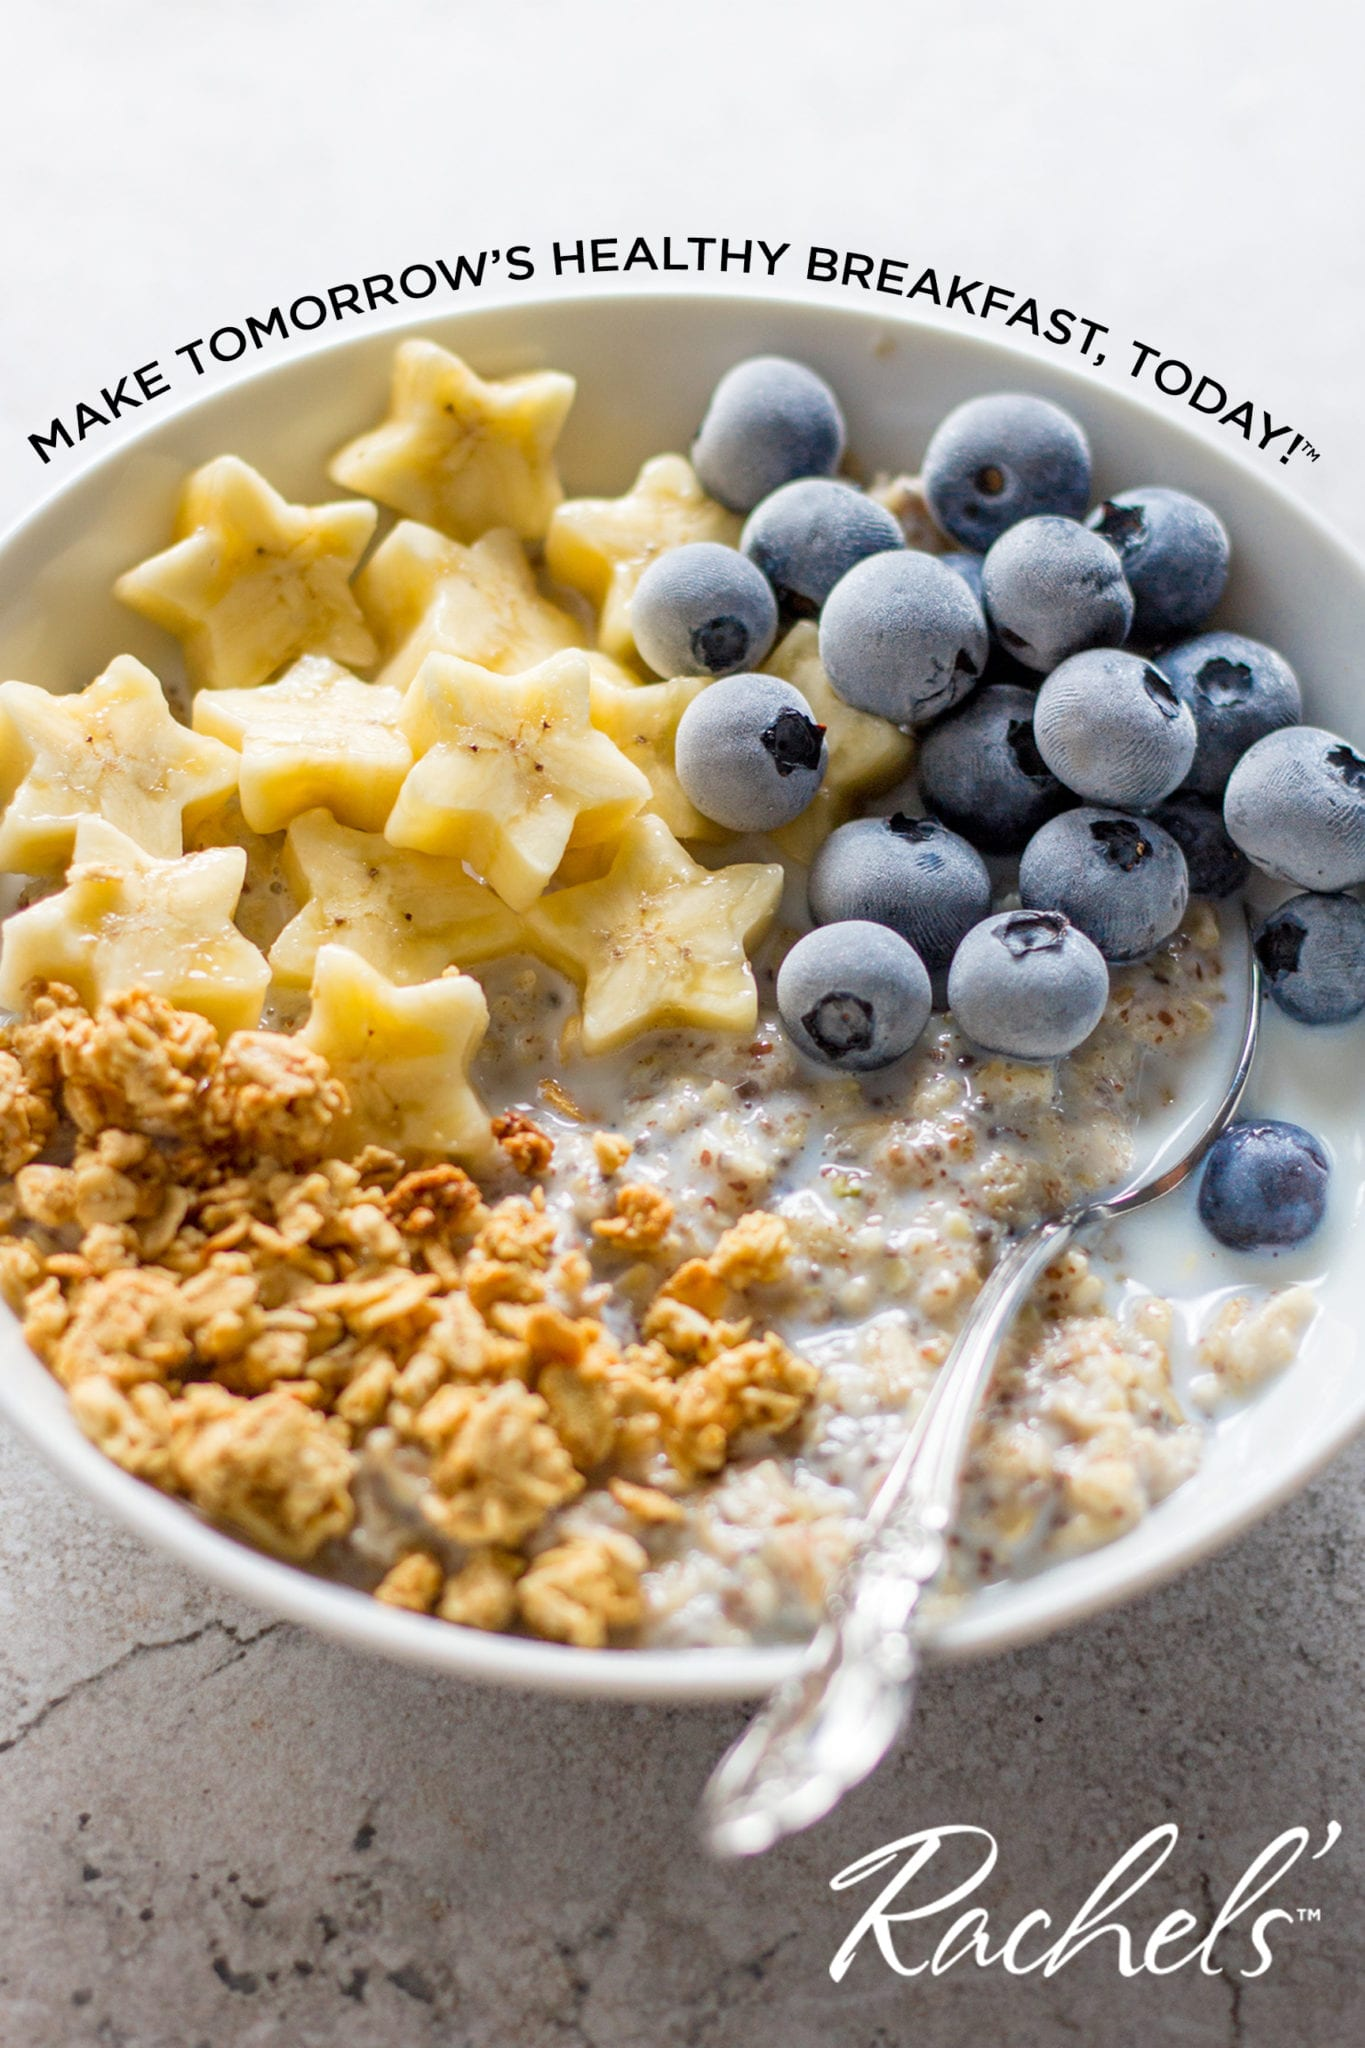 Rachel Overnight oats in bowl with fruit